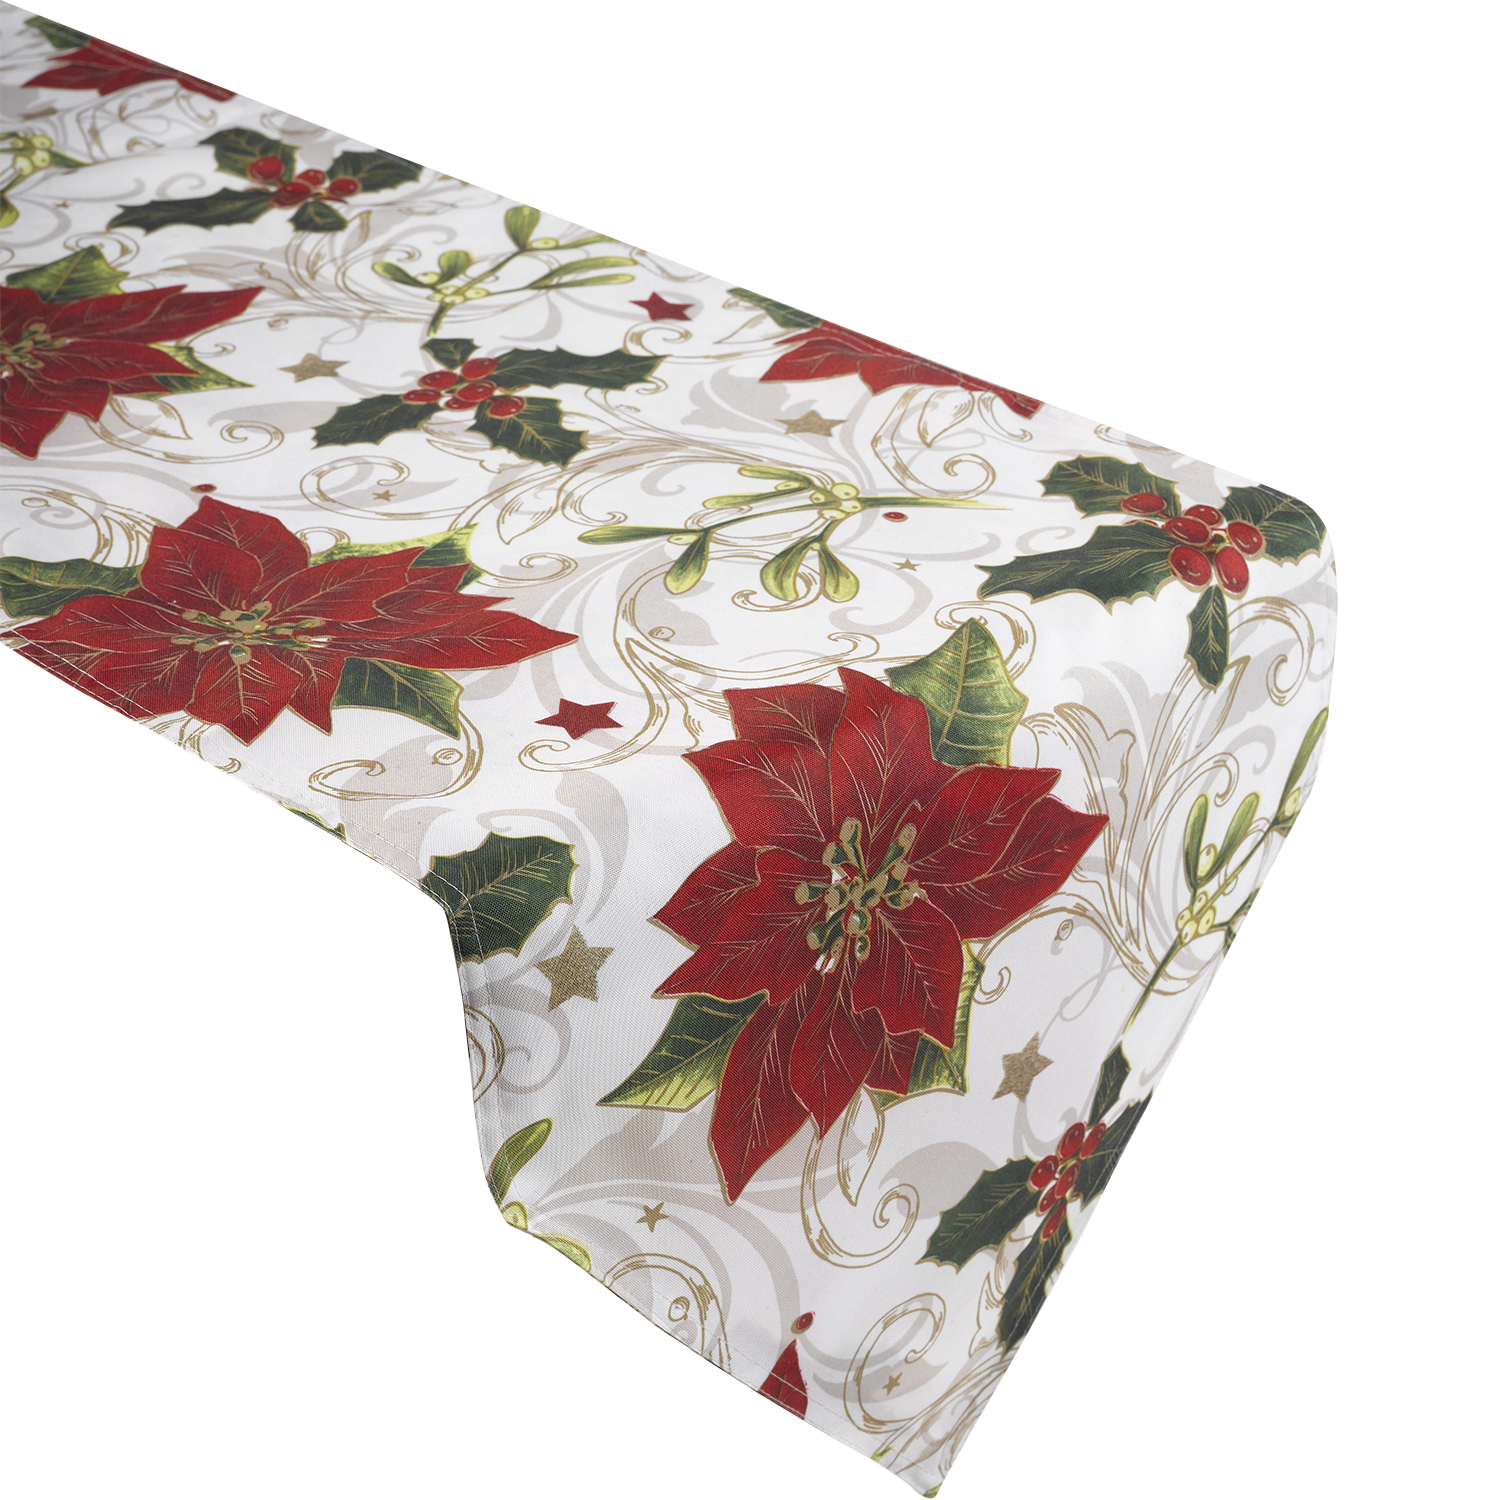 This festive and Vibrant table runner has lovely red flowers unfurling on to the scene and the festive color combination will make this a great addition to your holiday home. The tablecloths are as small as that can be used as place mat / placemat or to cover a nightstand, to cover your coffee table or to cover your dining table.